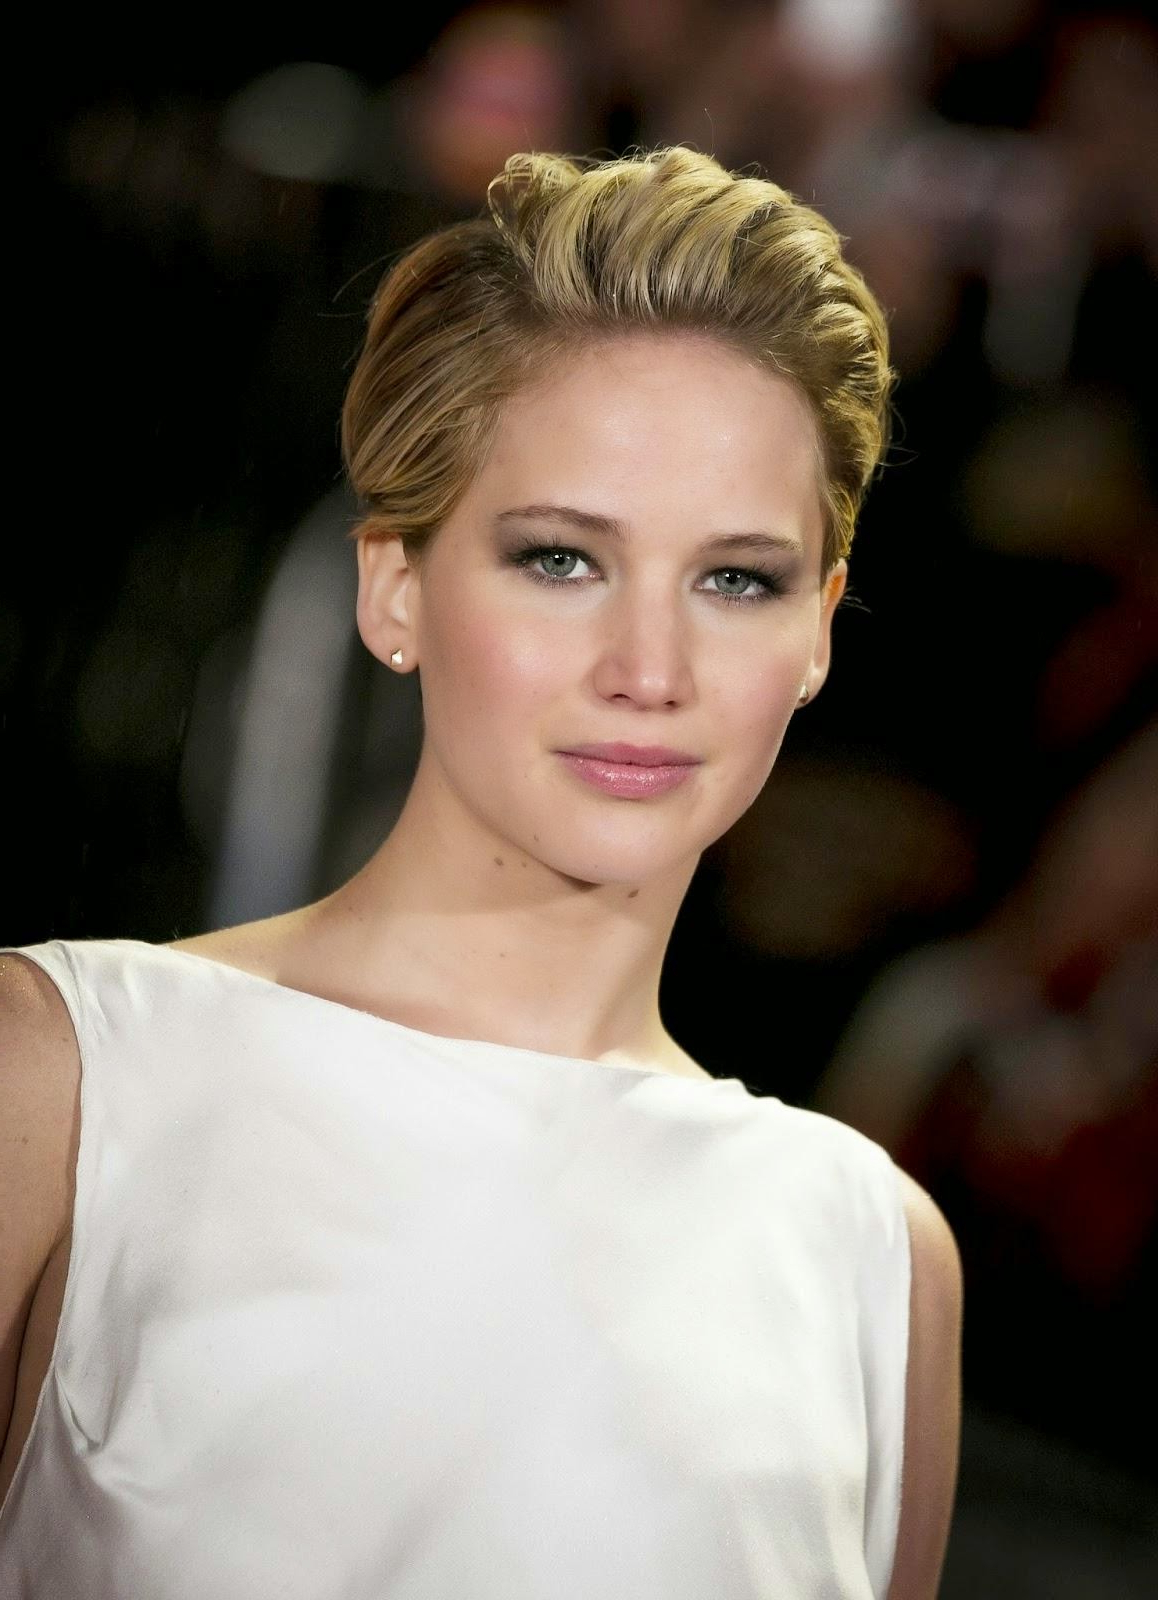 Jennifer Lawrence Short Hairstyles | Hairstyles And Haircuts with regard to Jennifer Lawrence Short Hairstyles